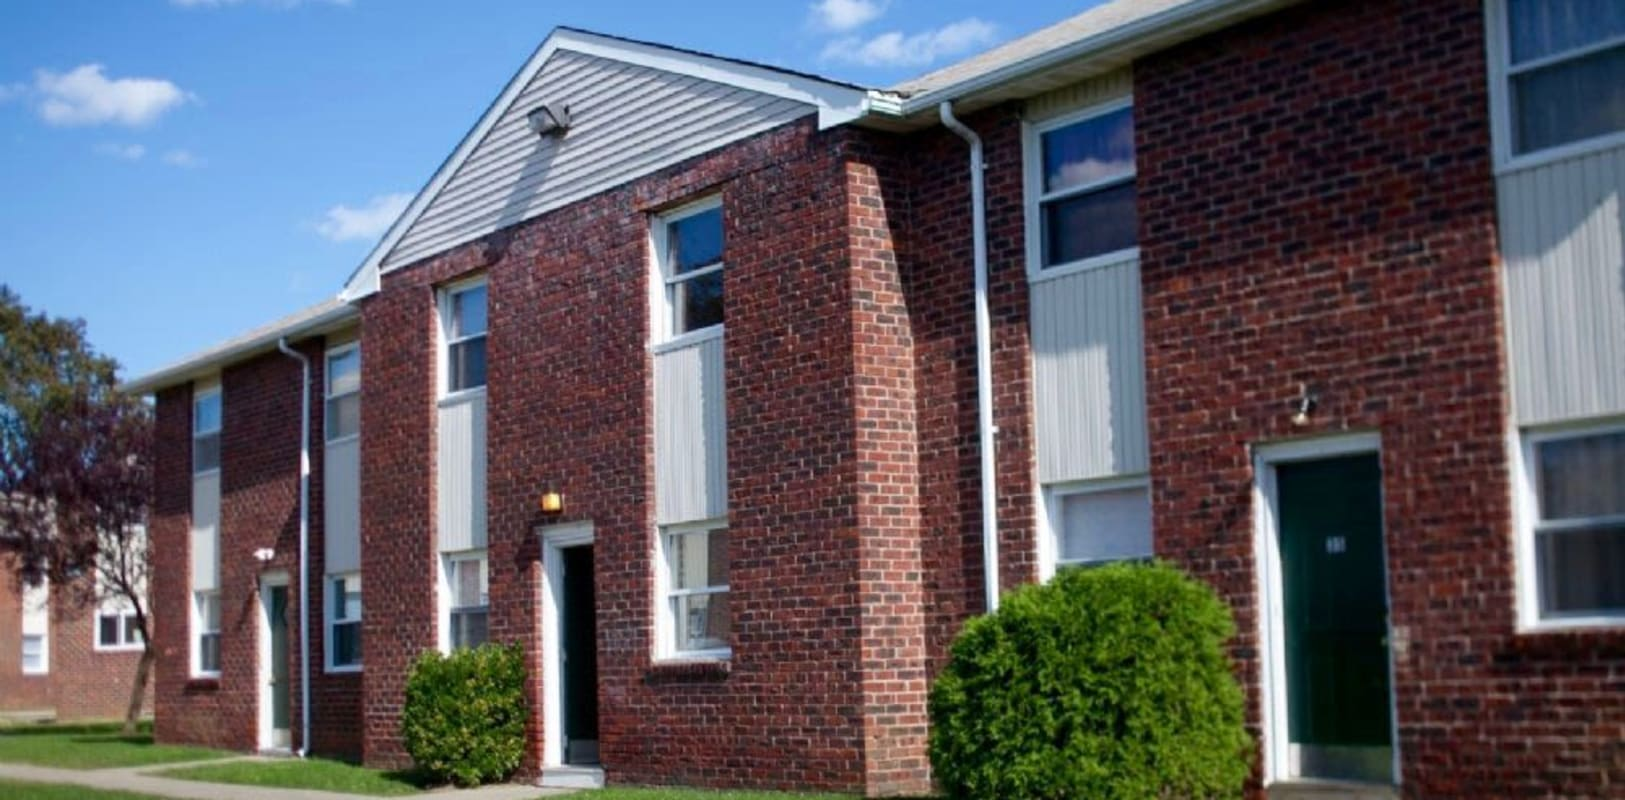 Exterior of Buena Vista Apartments in Long Branch, New Jersey